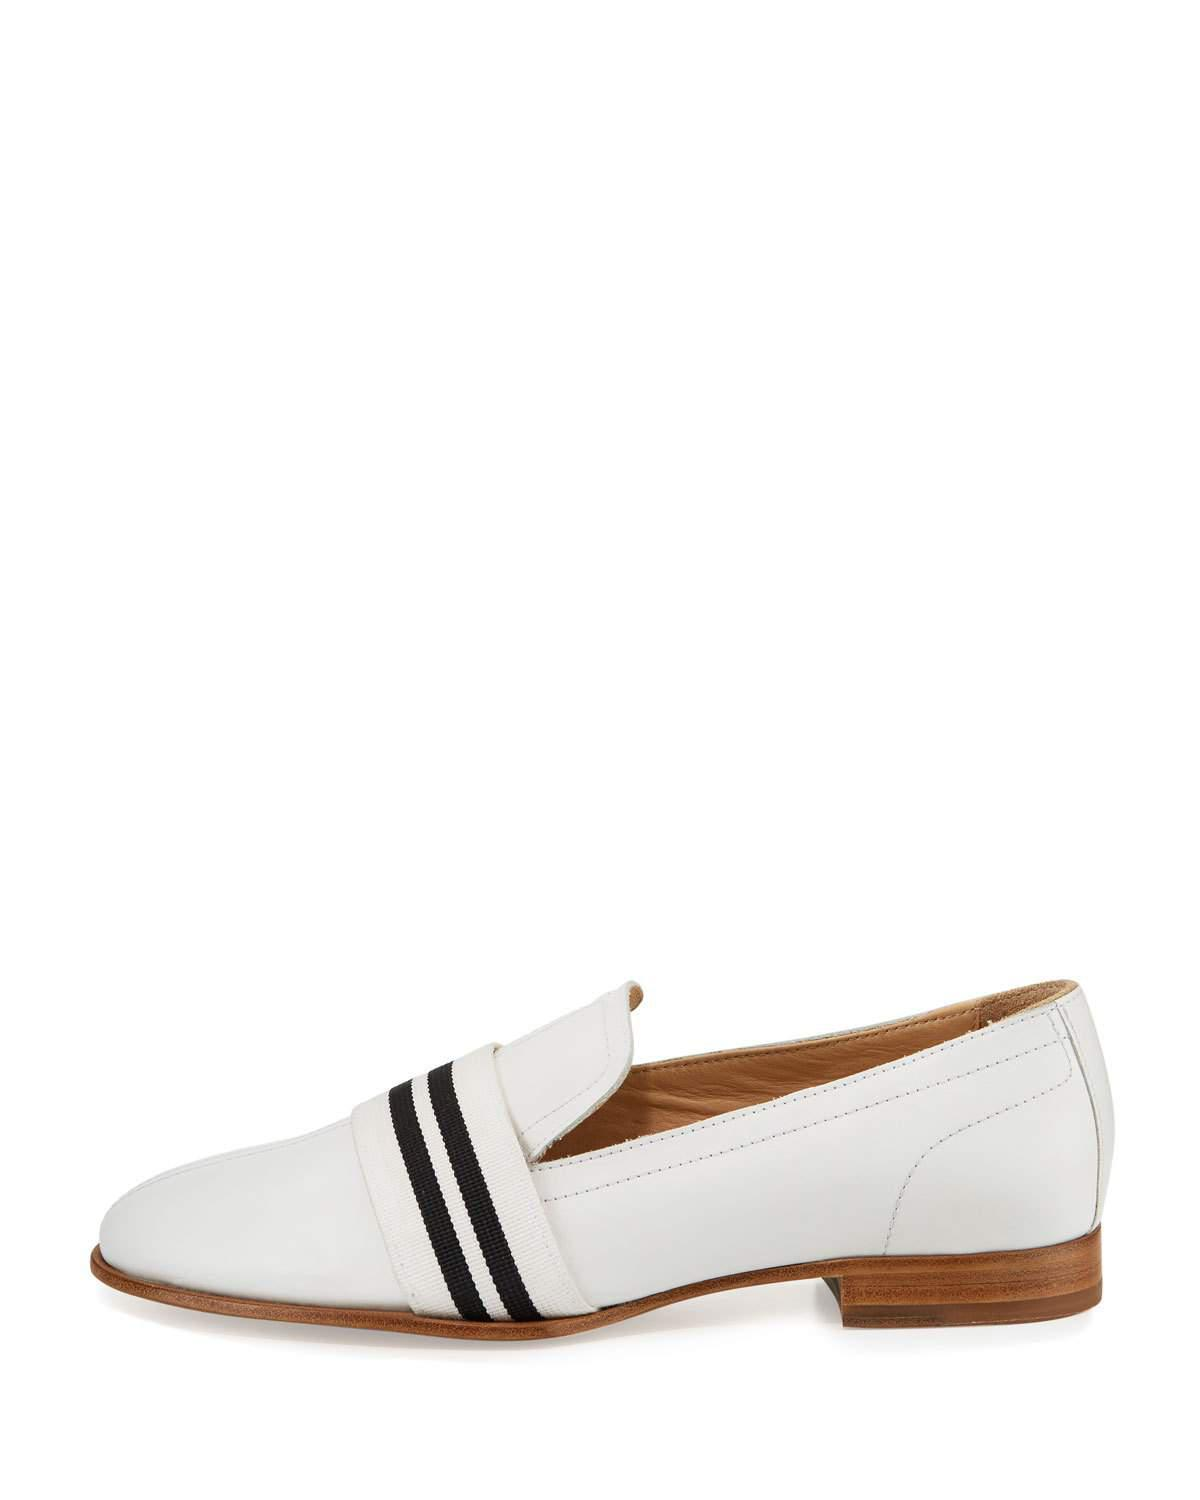 ca44bcf4d87 Lyst - Rag   Bone Amber Striped-web Leather Loafer in White